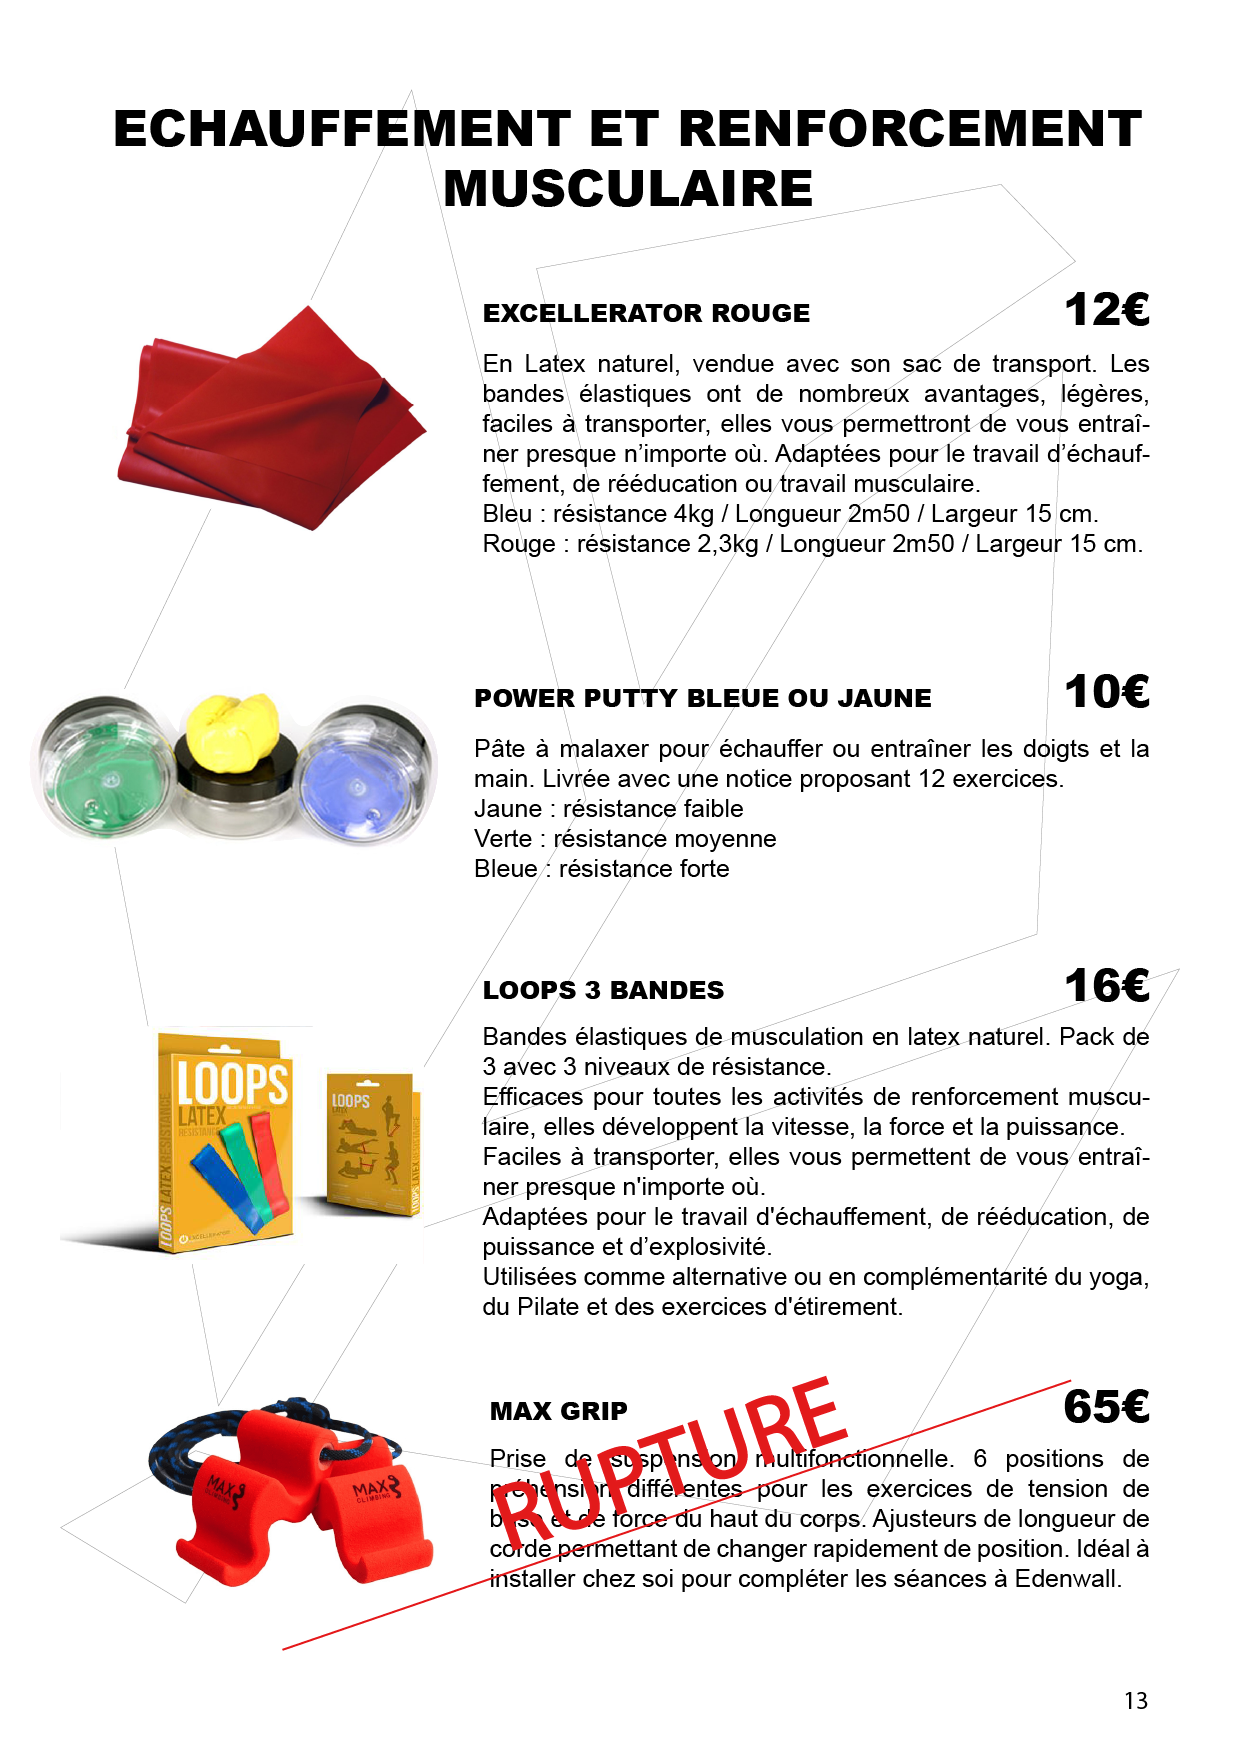 13-catalogue-boutique-edenwall-escalade-charnay-les-macon-referencement-site